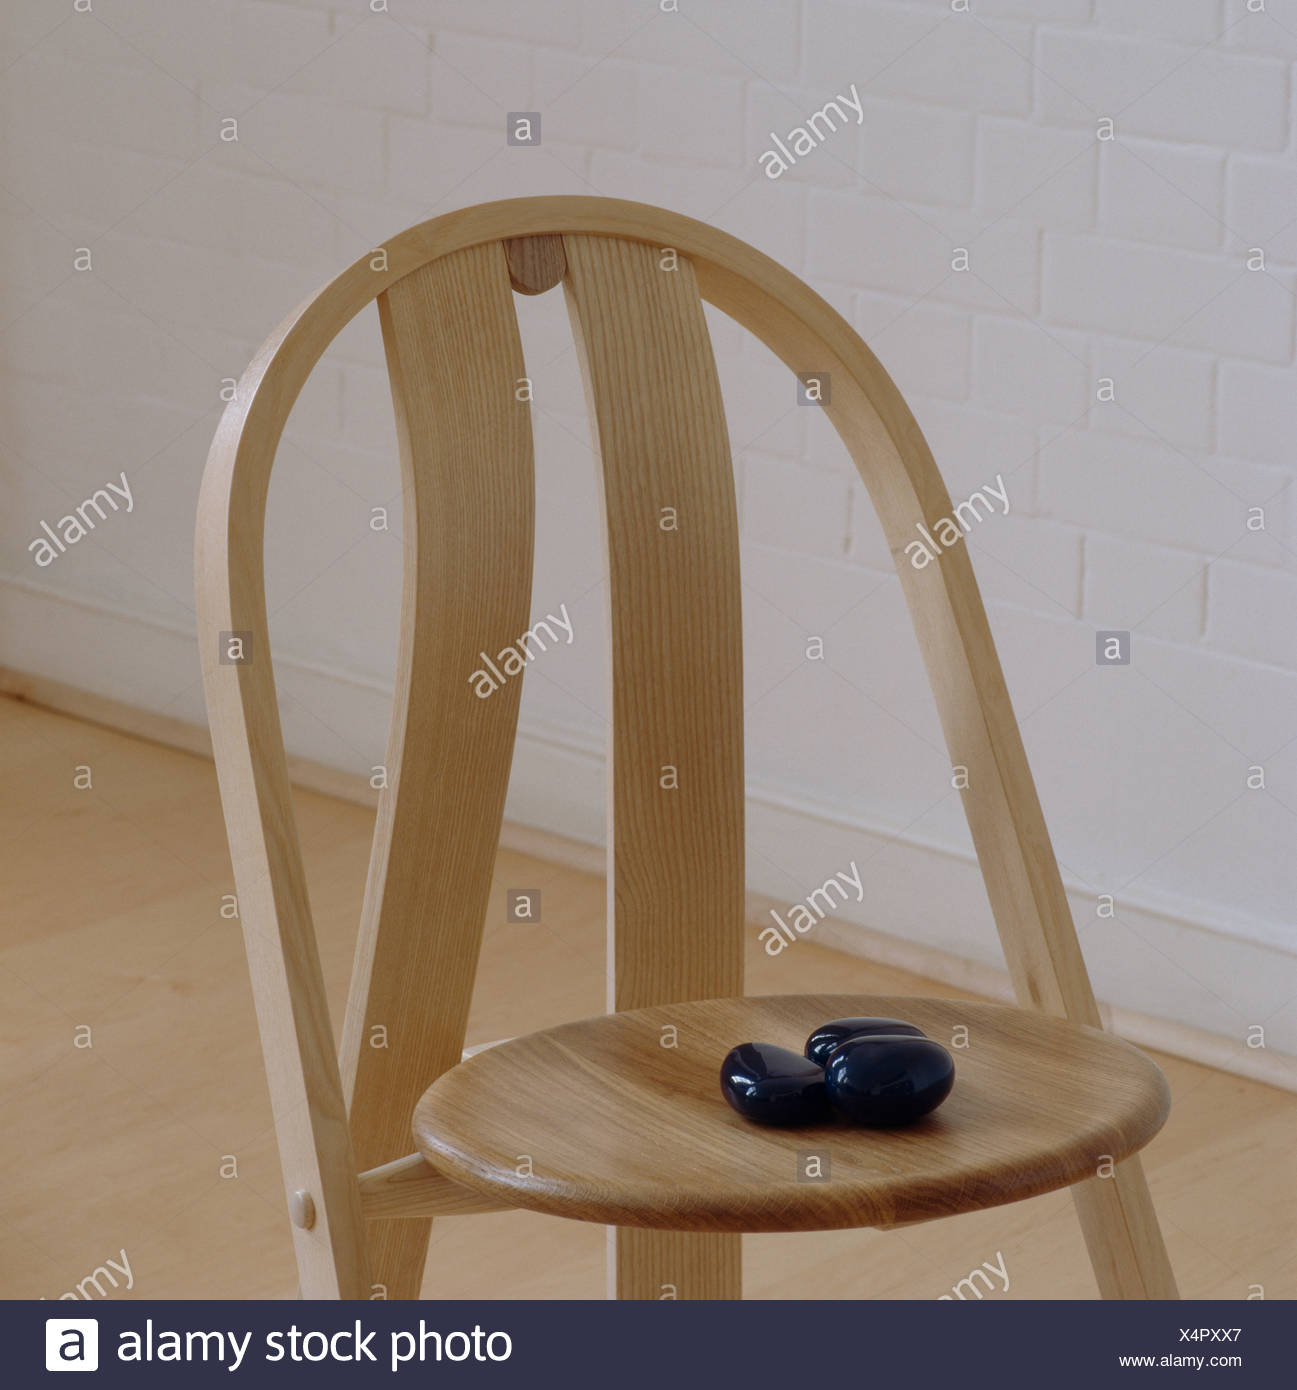 plywood chair stock photos plywood chair stock images alamy rh alamy com Plywood Bench CNC Plywood Chairs